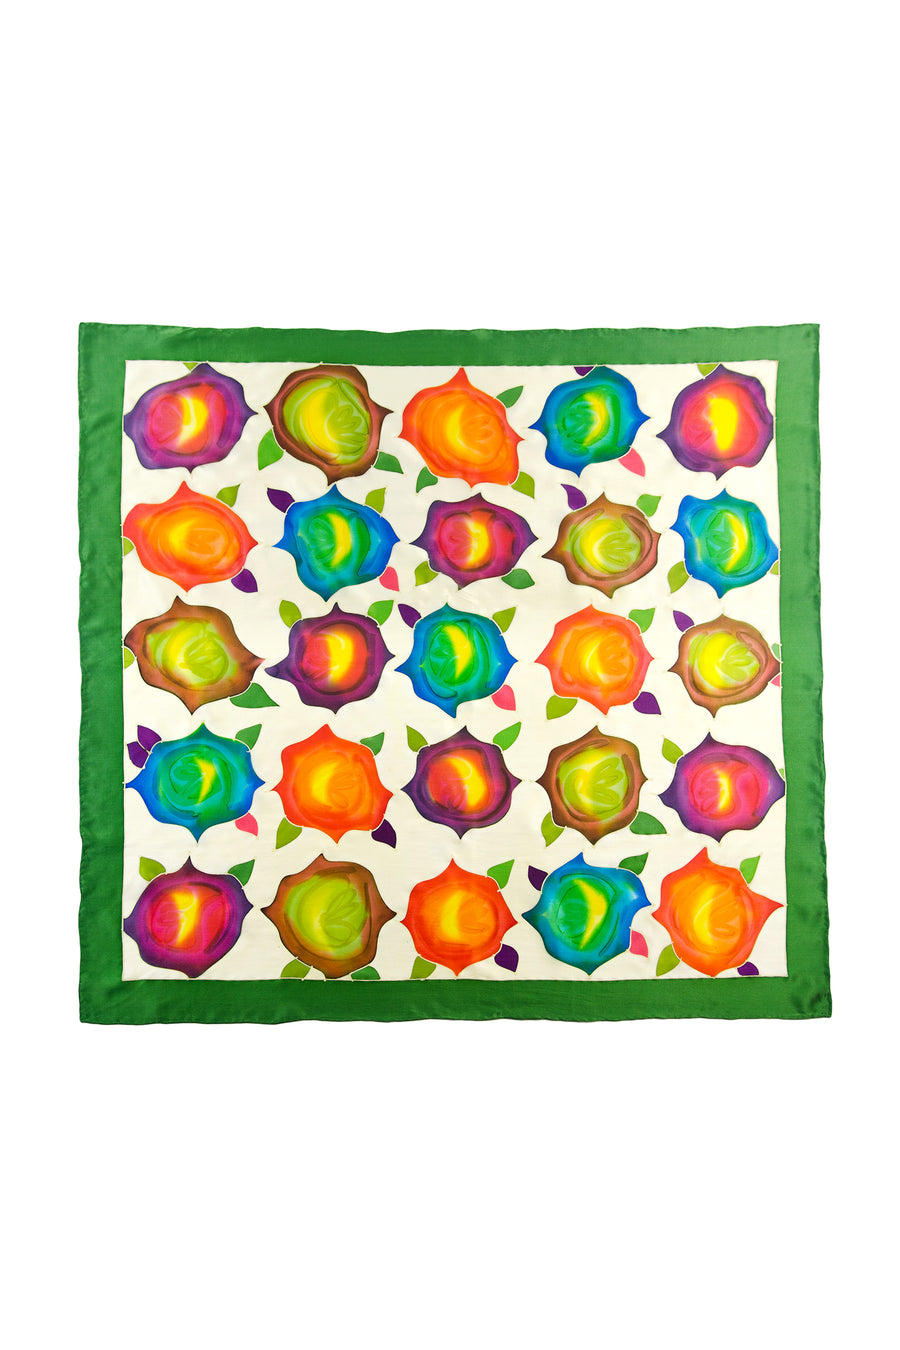 Abstract Flowers - Silk Square Hand Painted Scarf - testing23451234 - Scarves